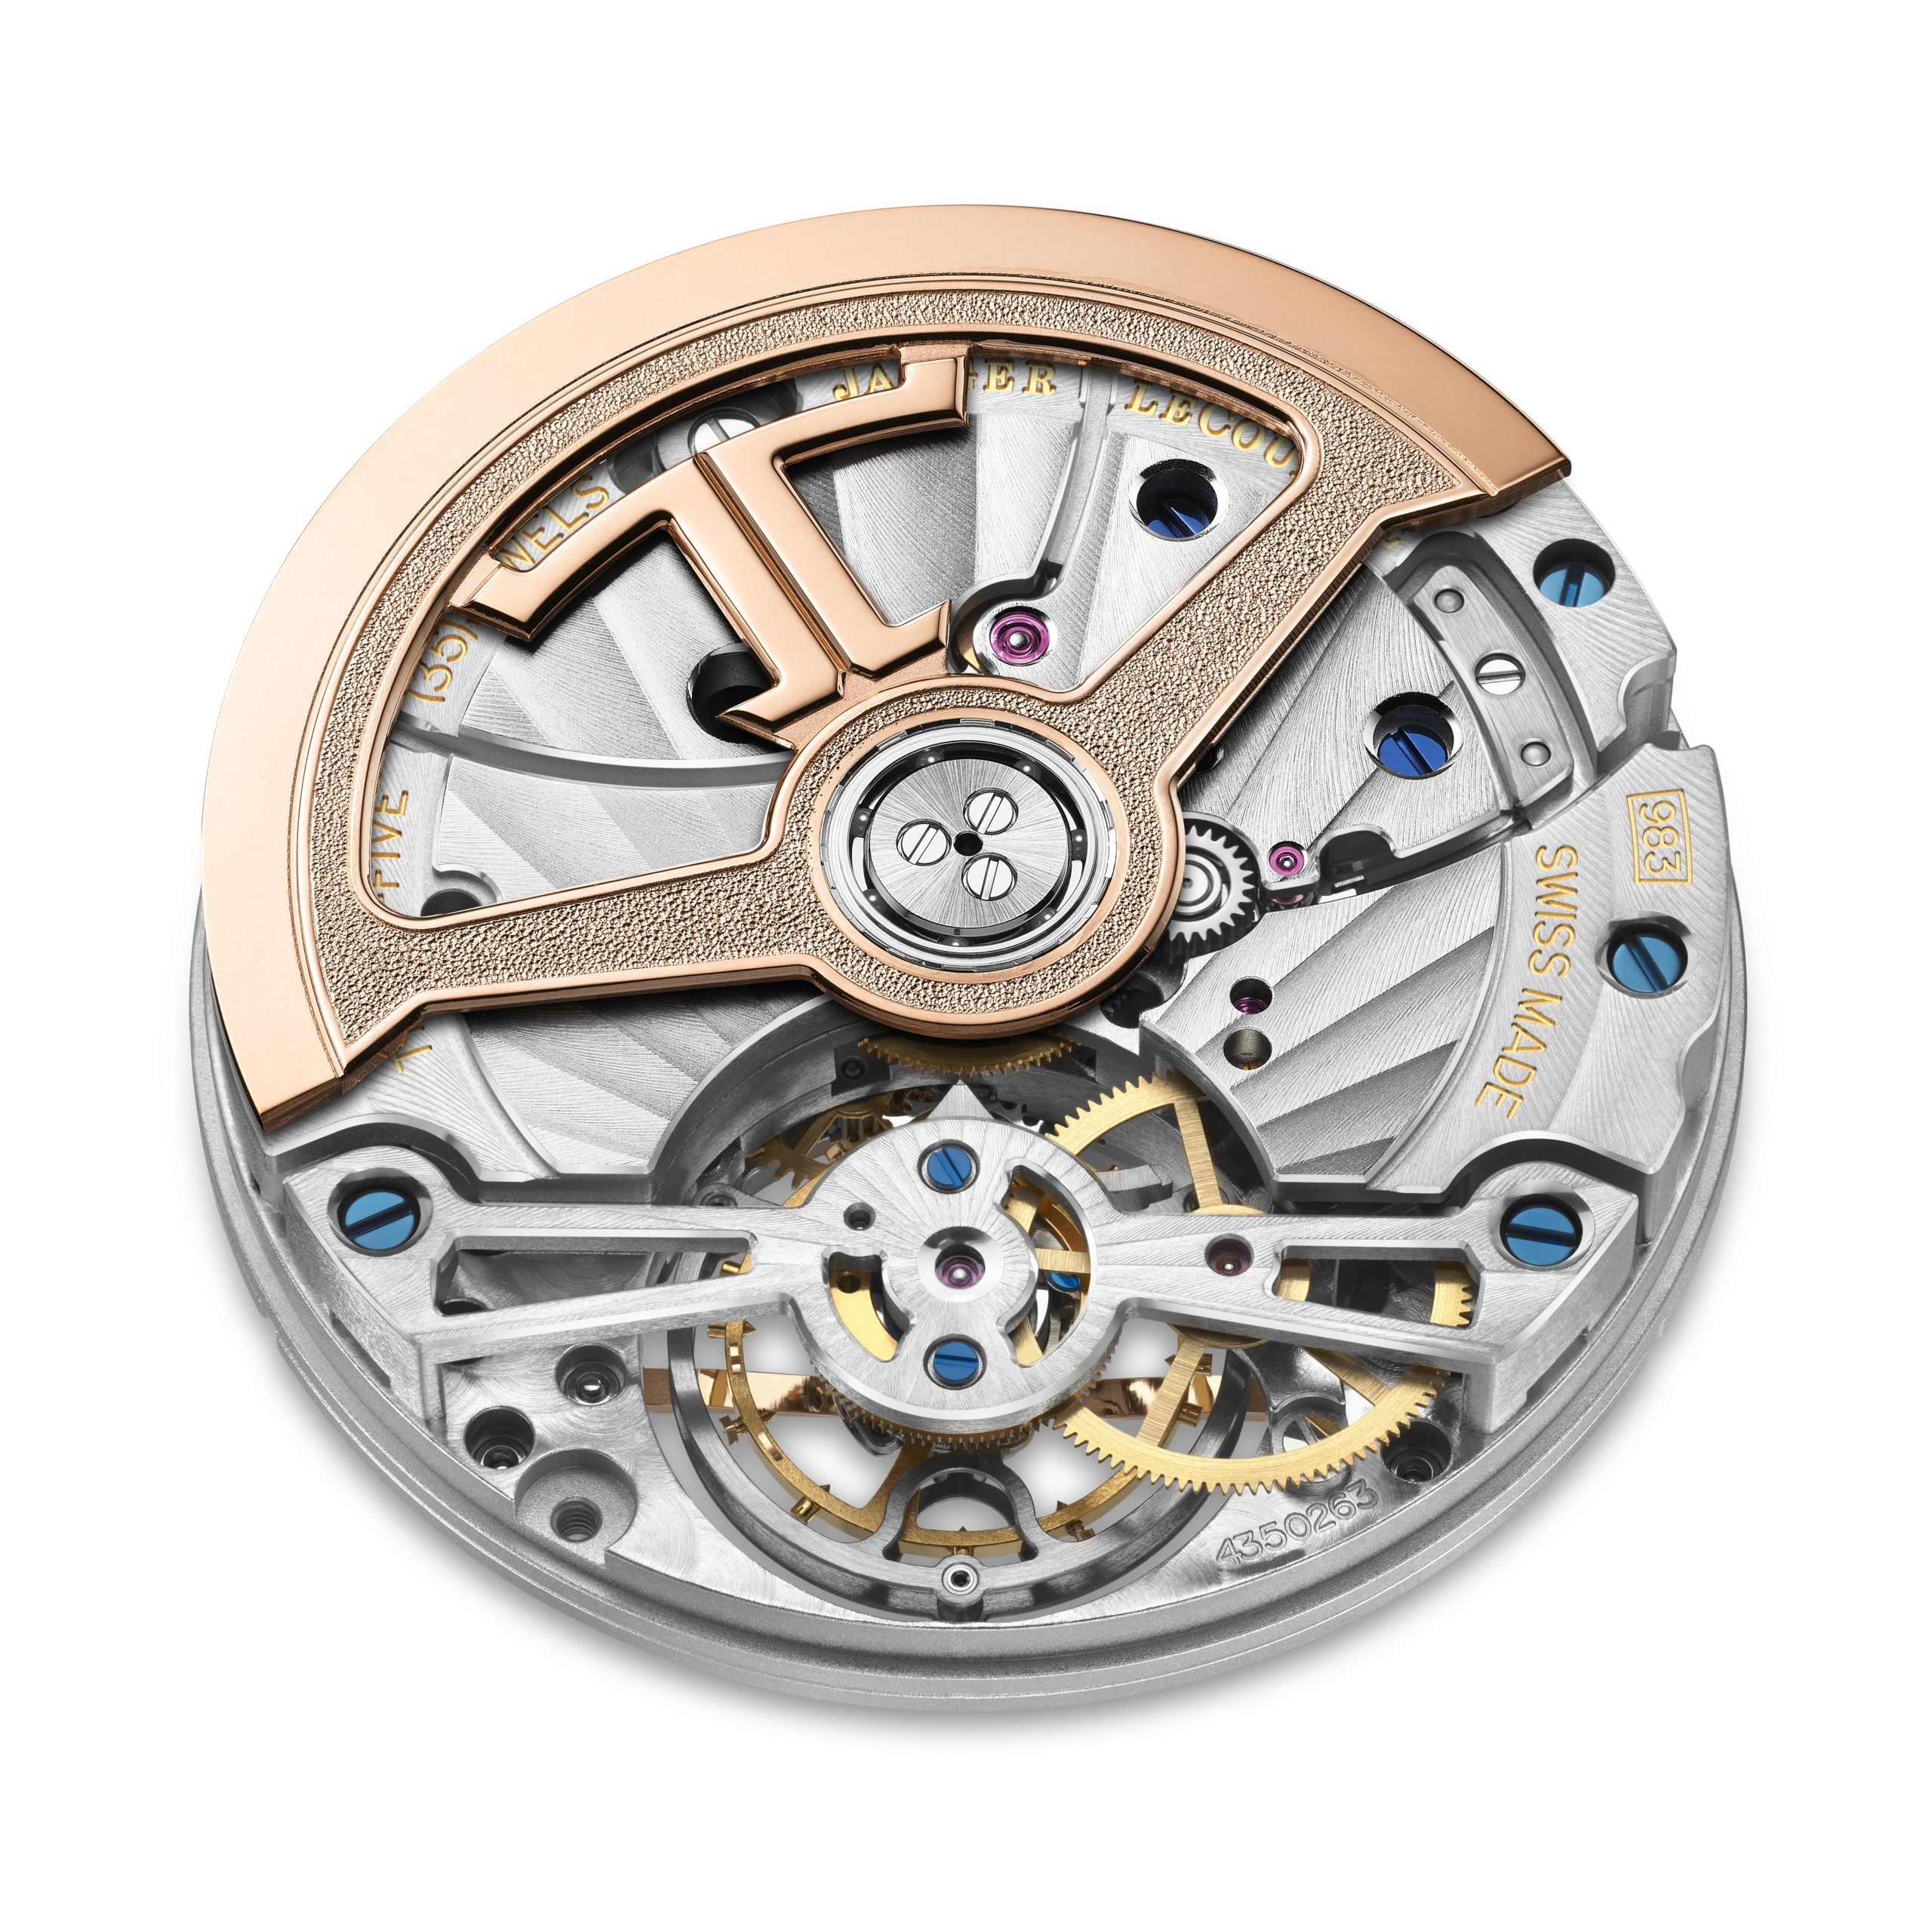 movement-jlc-983-scaled.jpg